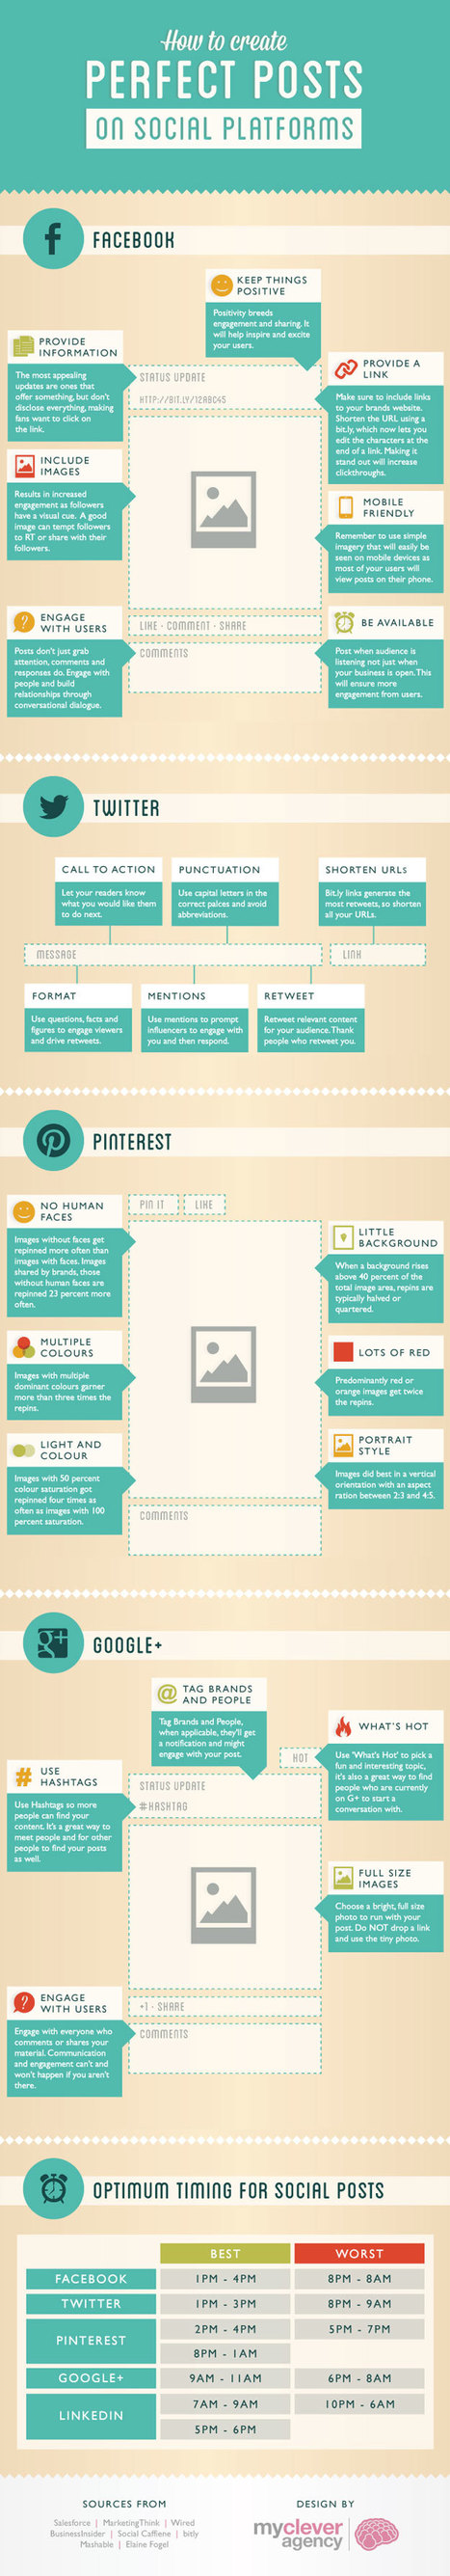 How To Create Effective Posts on the 4 Main Social Sites [Infographic] | Social Media sites | Scoop.it